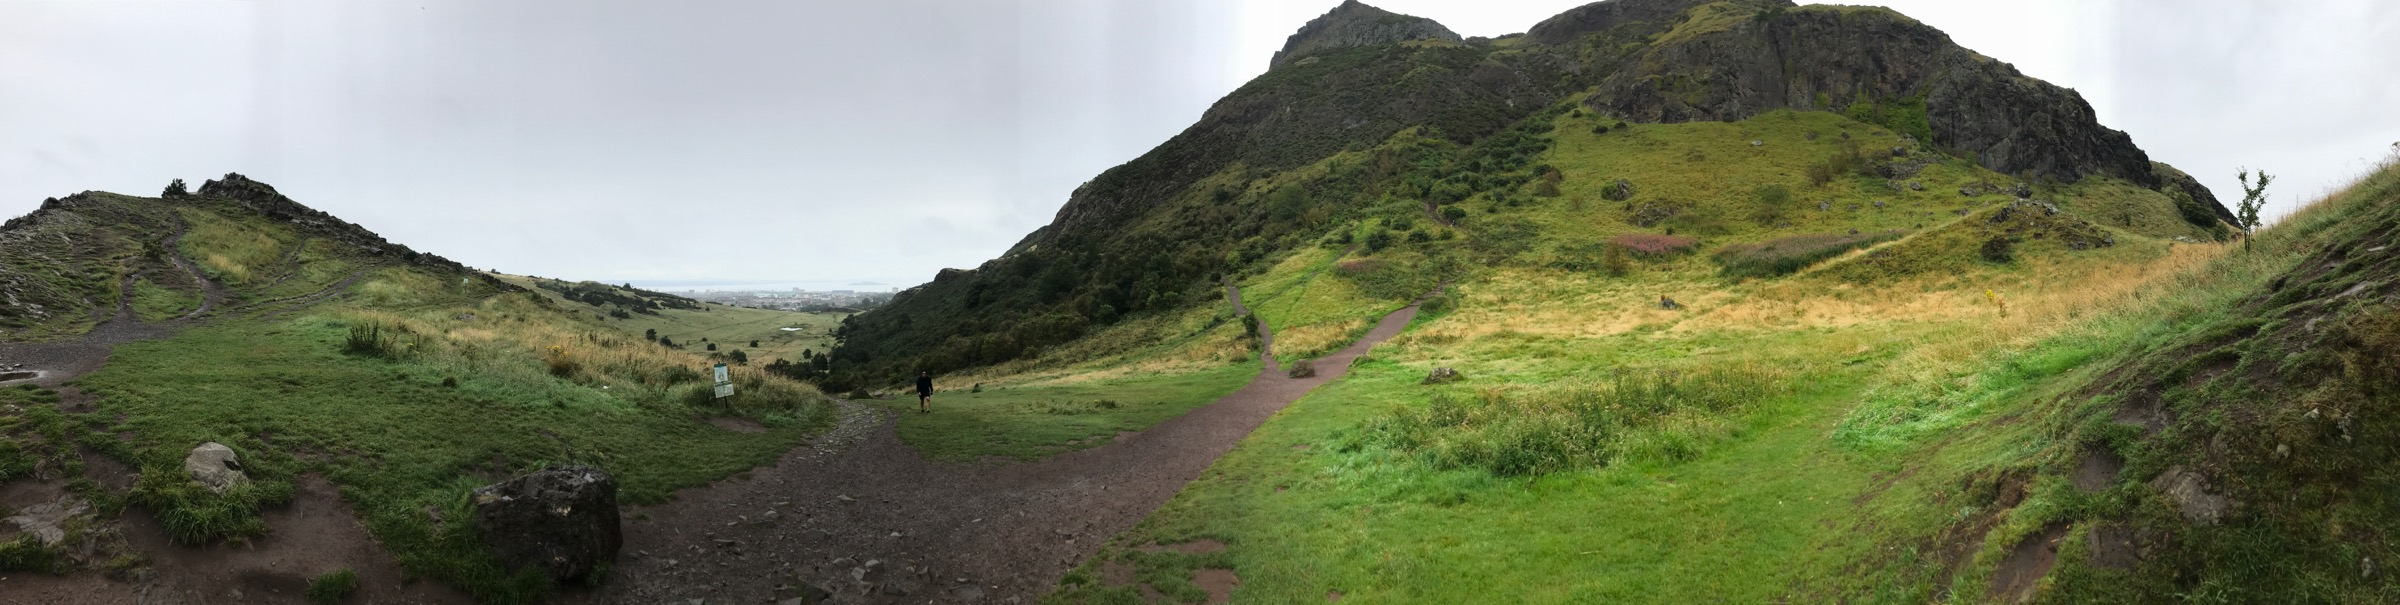 Looking up at Arthur's Seat from the beginning of the hike.